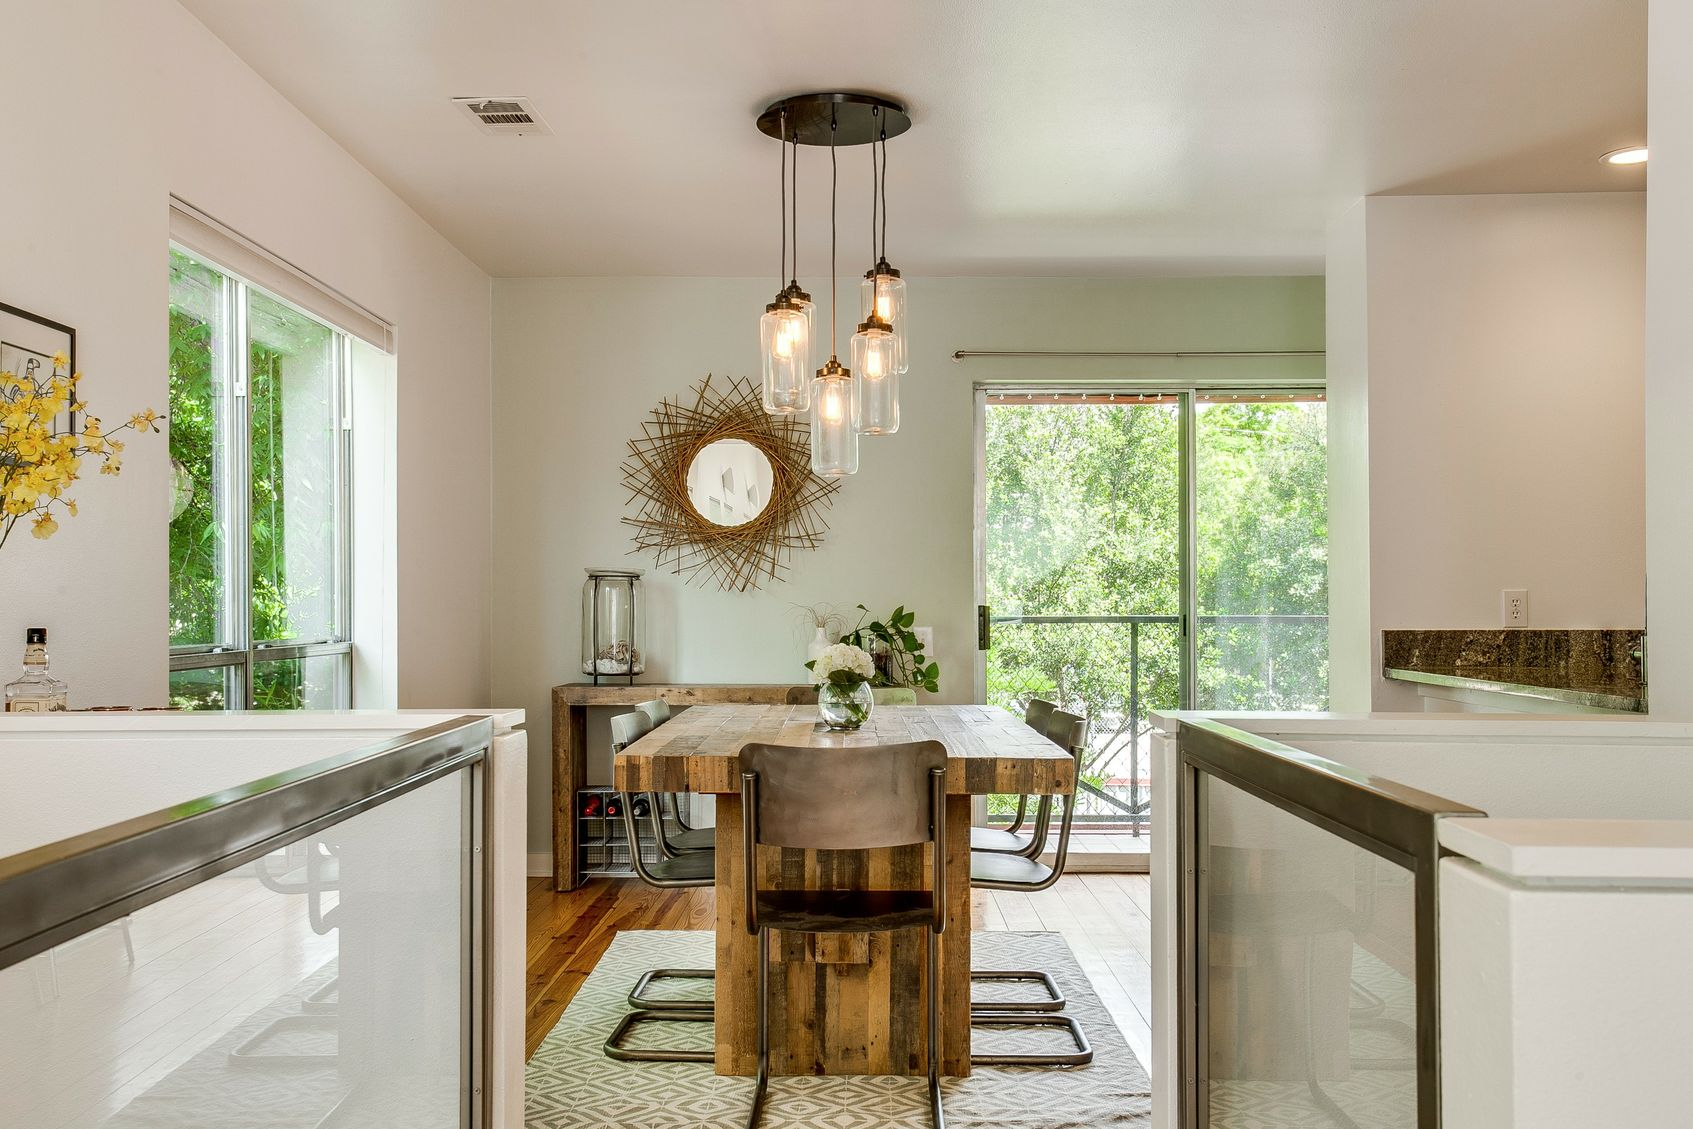 Tips for maximizing small spaces - Maximize small spaces property ...